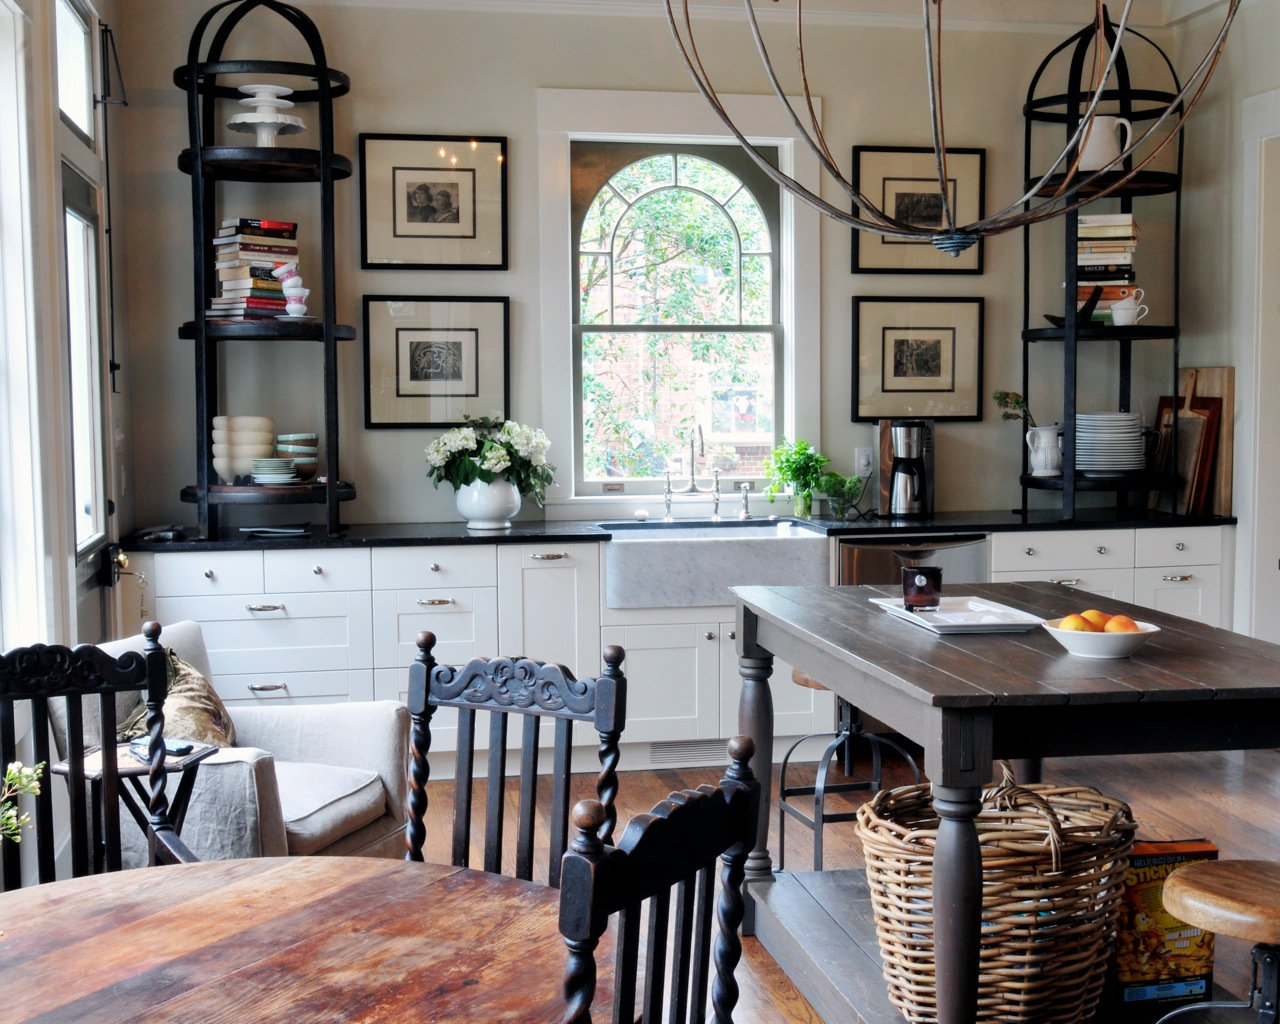 Rustic Chic Kitchen Decor 17 Best Images About Chicy Chic On Pinterest Shabby Chic